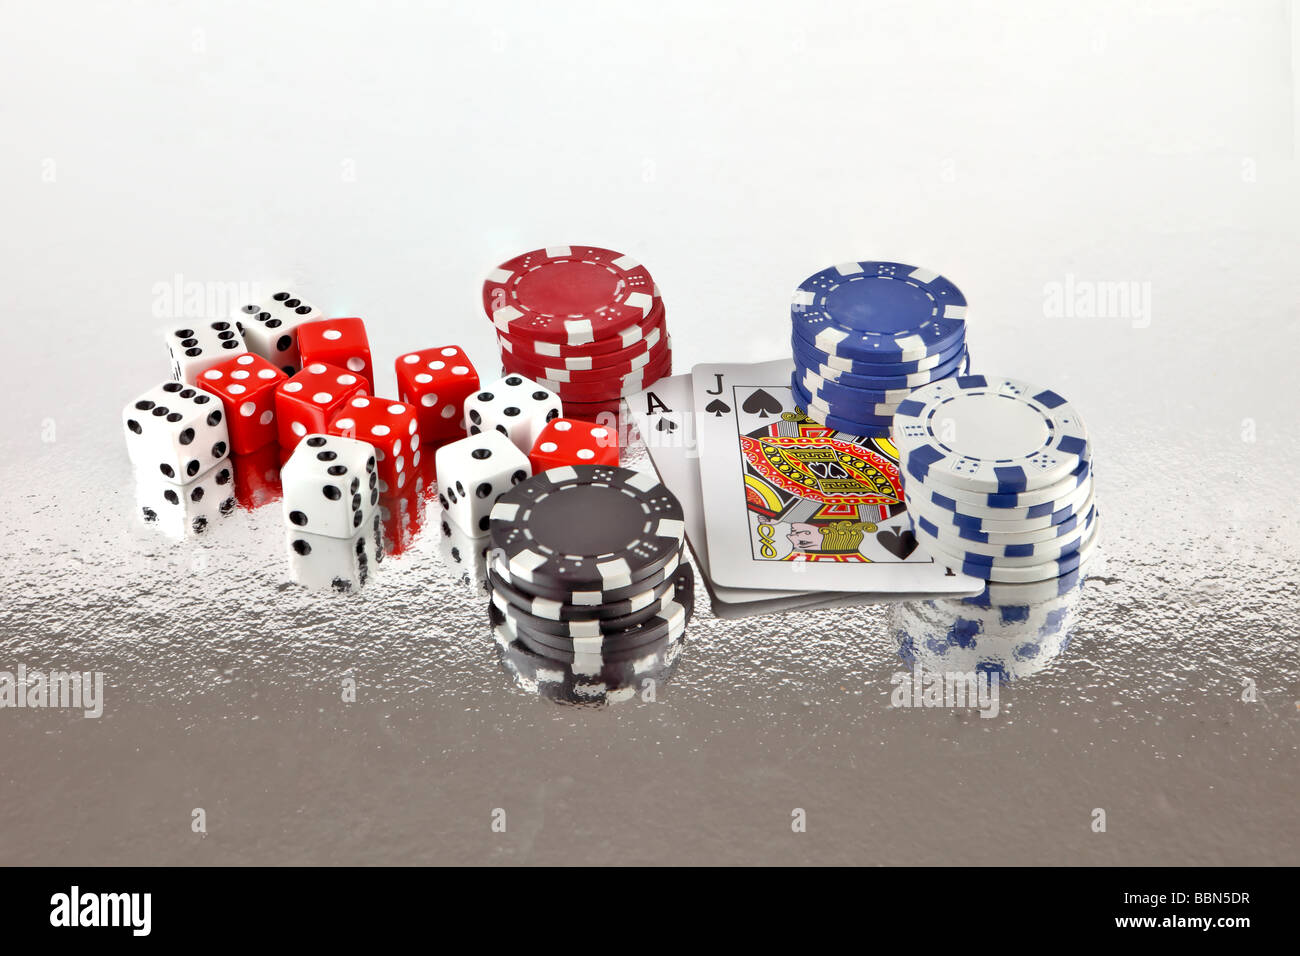 Gambling devices of dice cards and poker chips Stock Photo